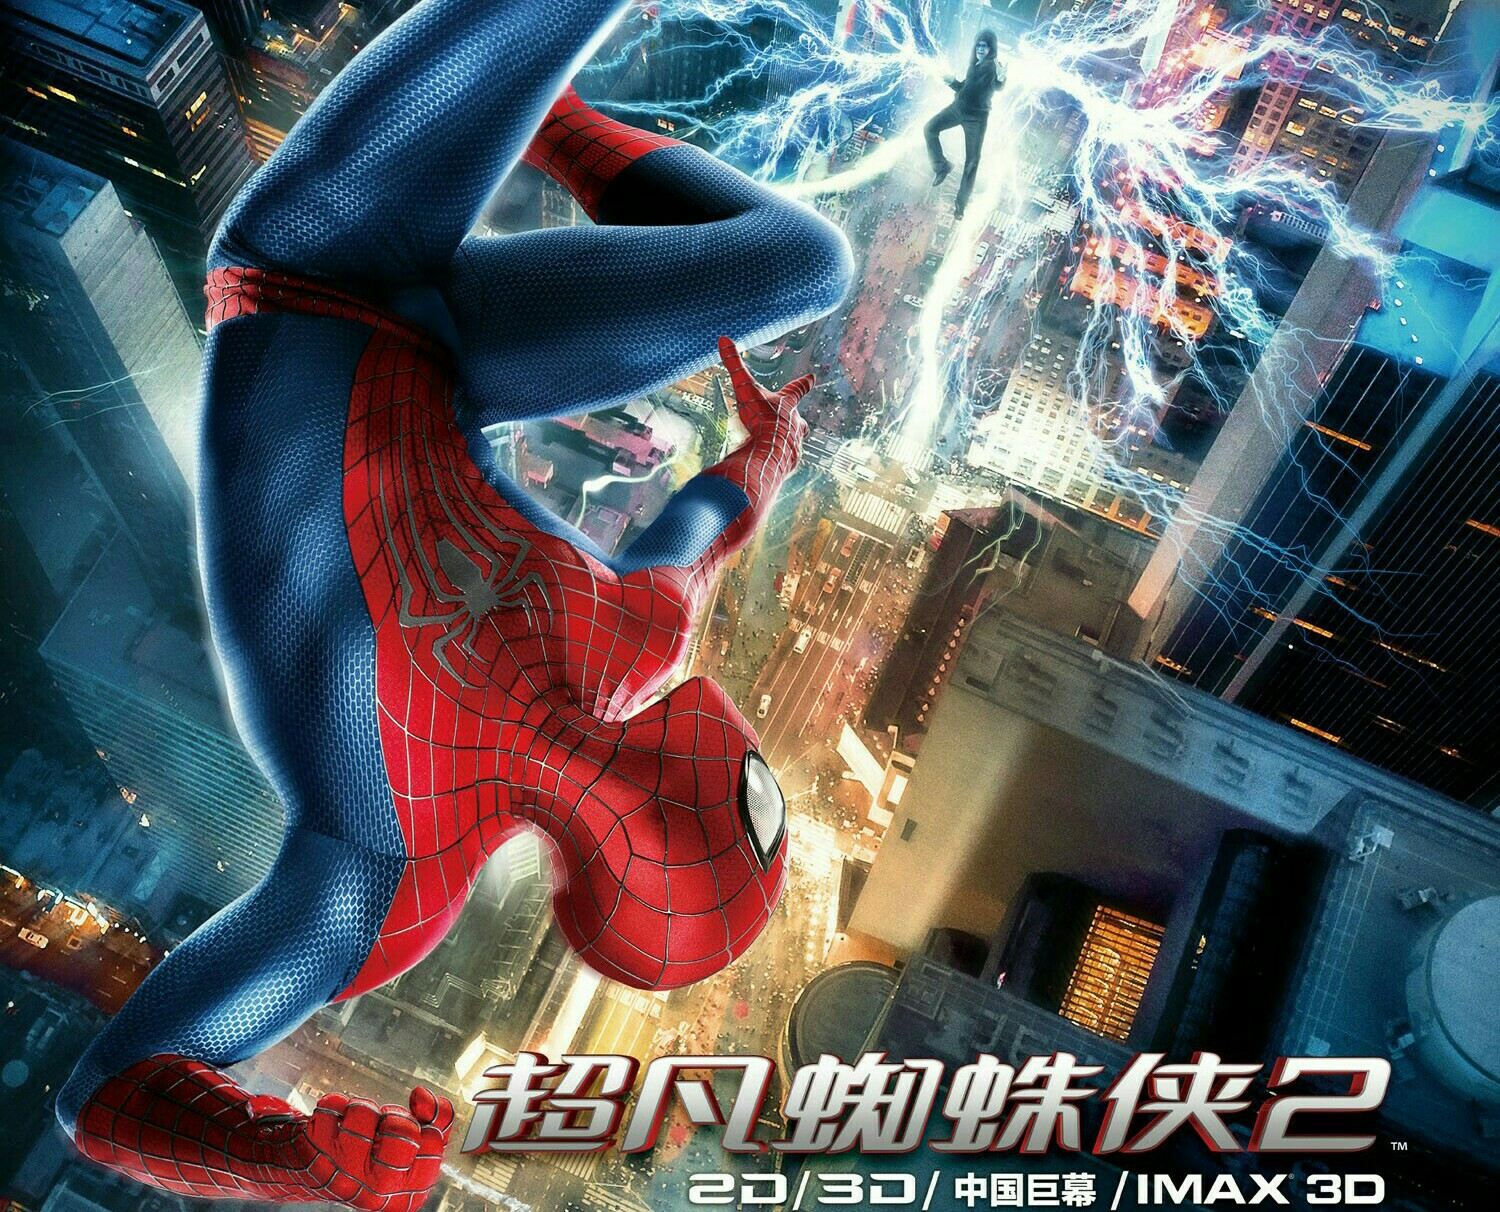 [4K电影]超凡蜘蛛侠2 The Amazing Spider-Man.2 2014[2160P/MKV/51.64GB]